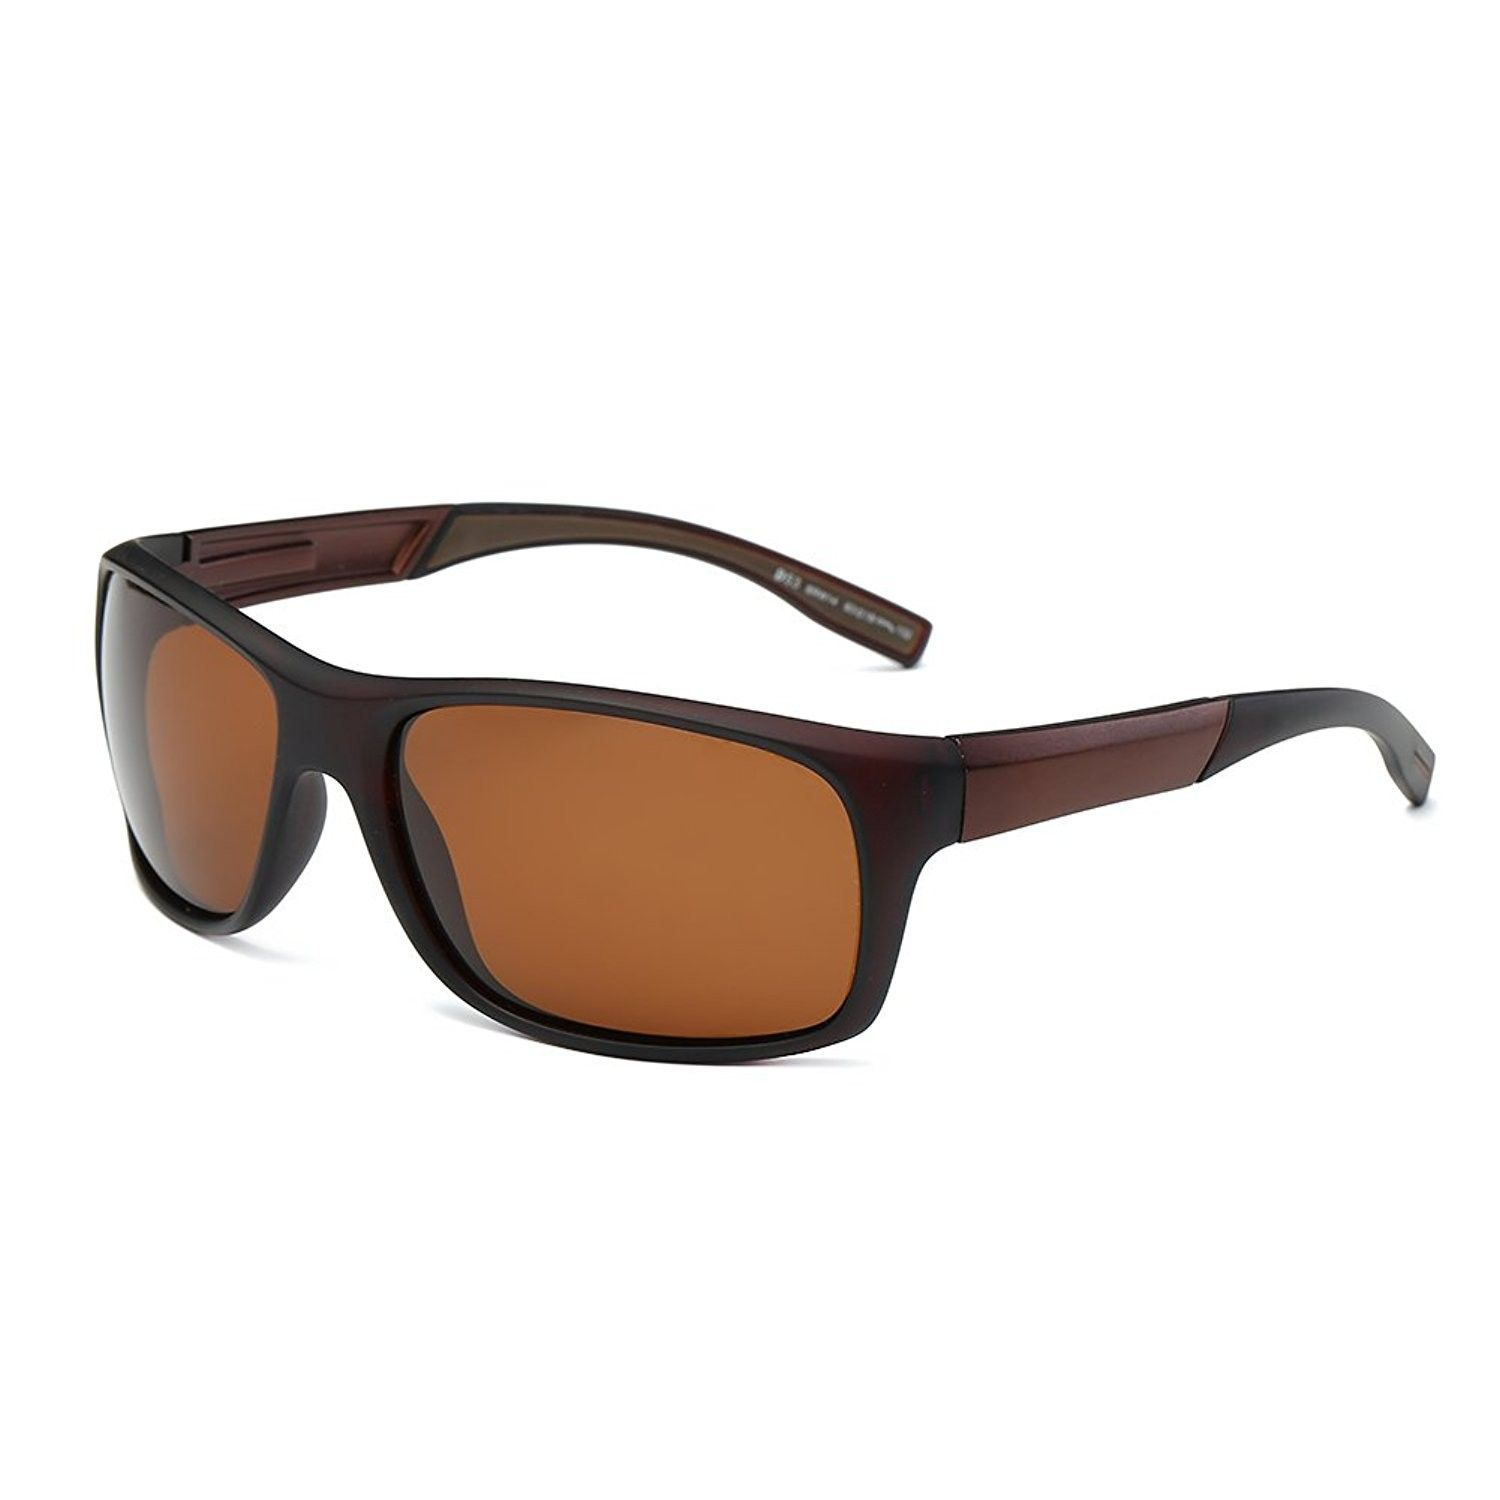 a270c4c7d2be Cool Polarized Sports Sunglasses Oversized Wrap Around Frame for Fishing  Golf Hiking D53 - Brown - CP17YYD82QC - Women s Sunglasses